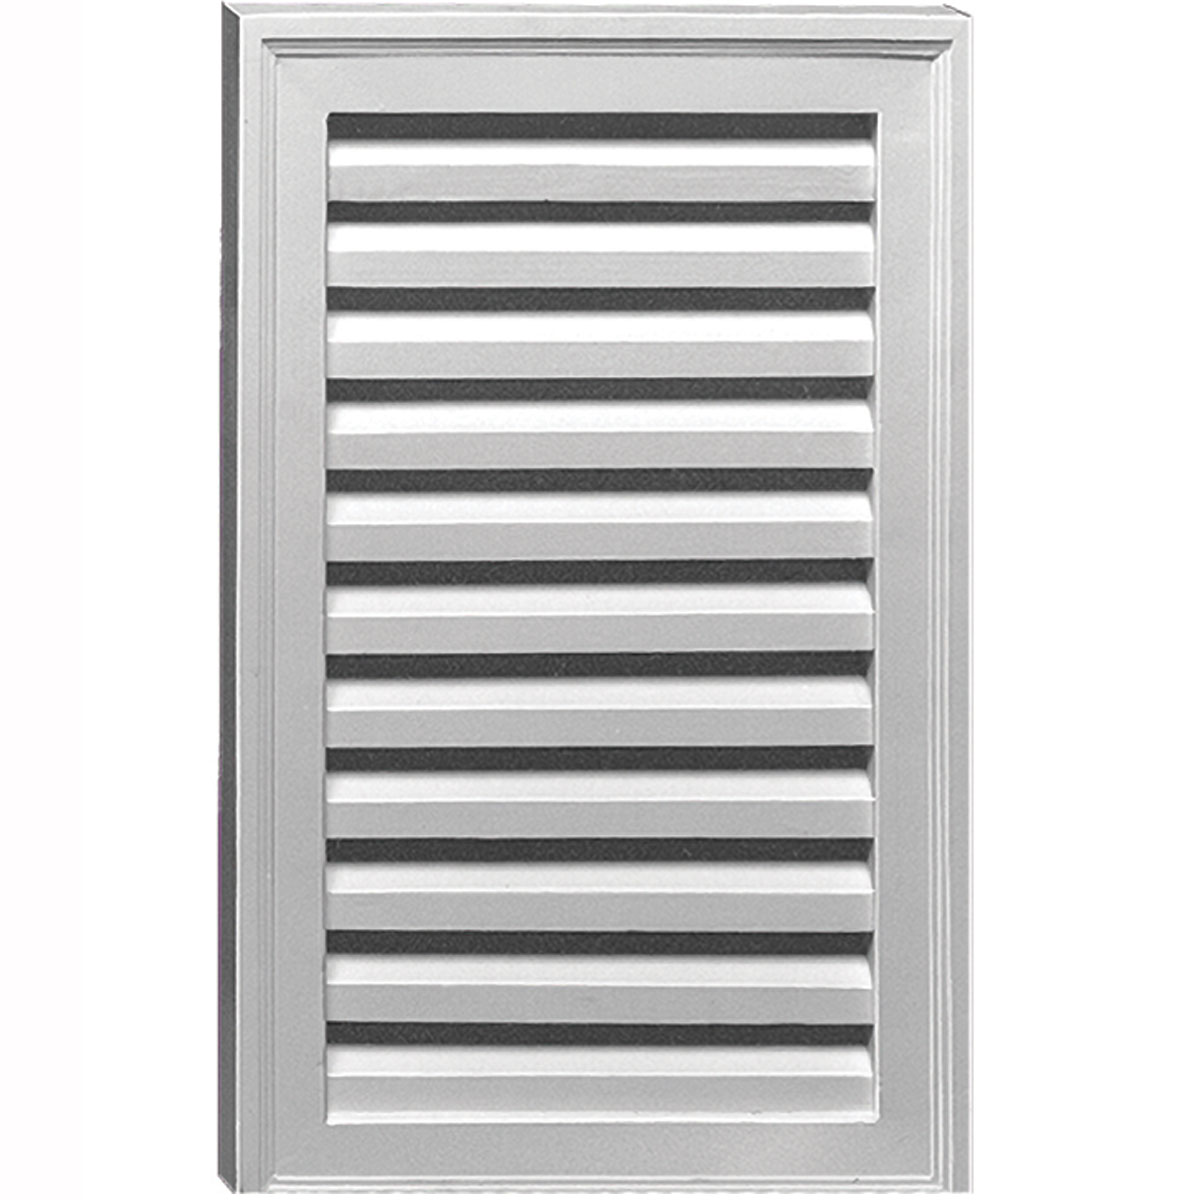 Fypon Fypon Gable Vents Fypon Louvers Urethane Gable